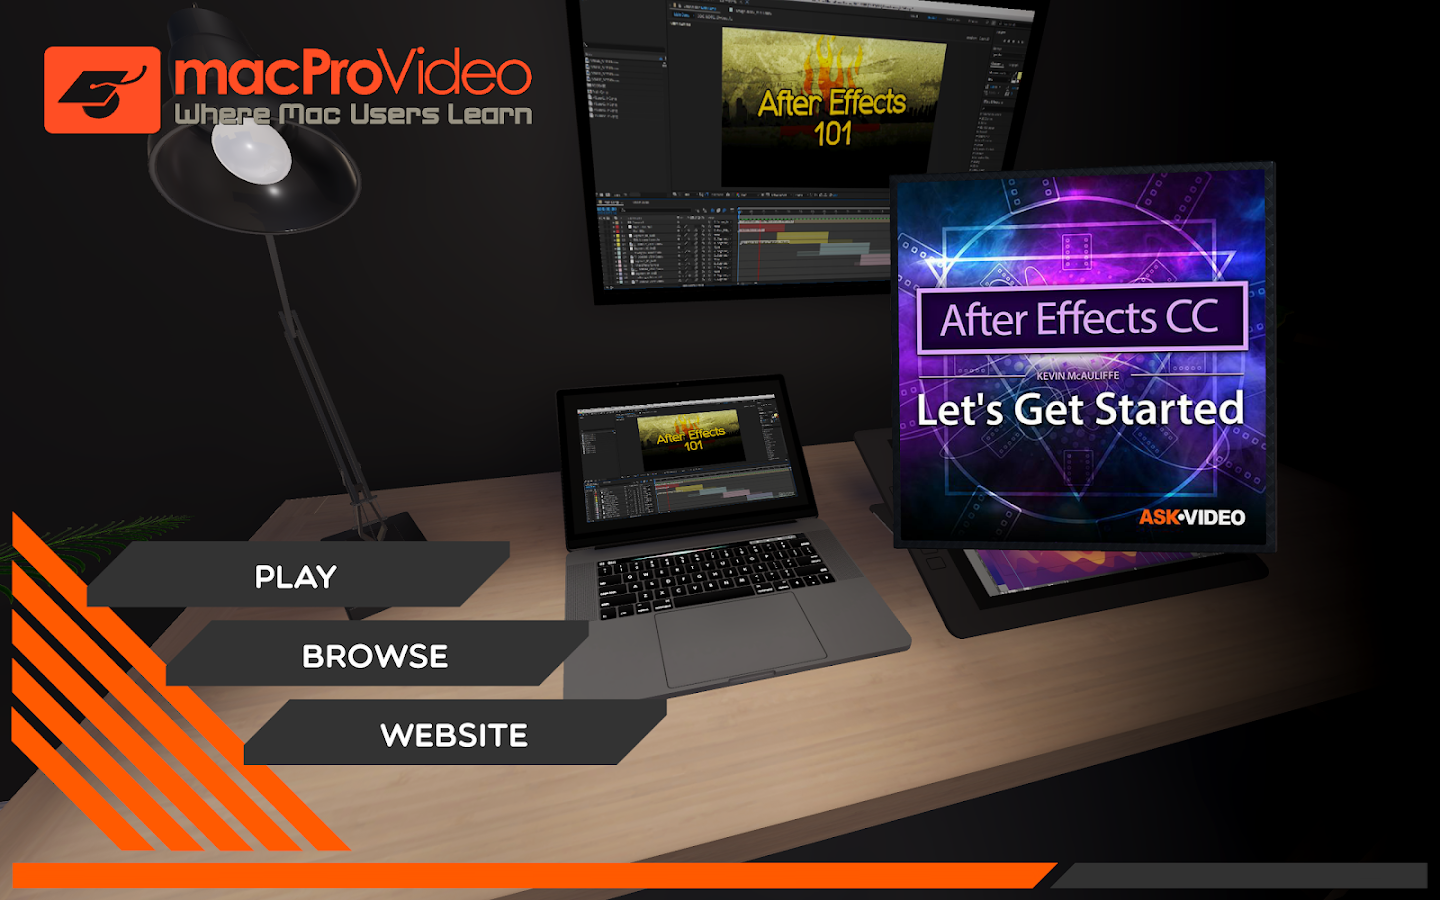 Let's Get Started with After Effects CC 101 - 2018 7 1 APK